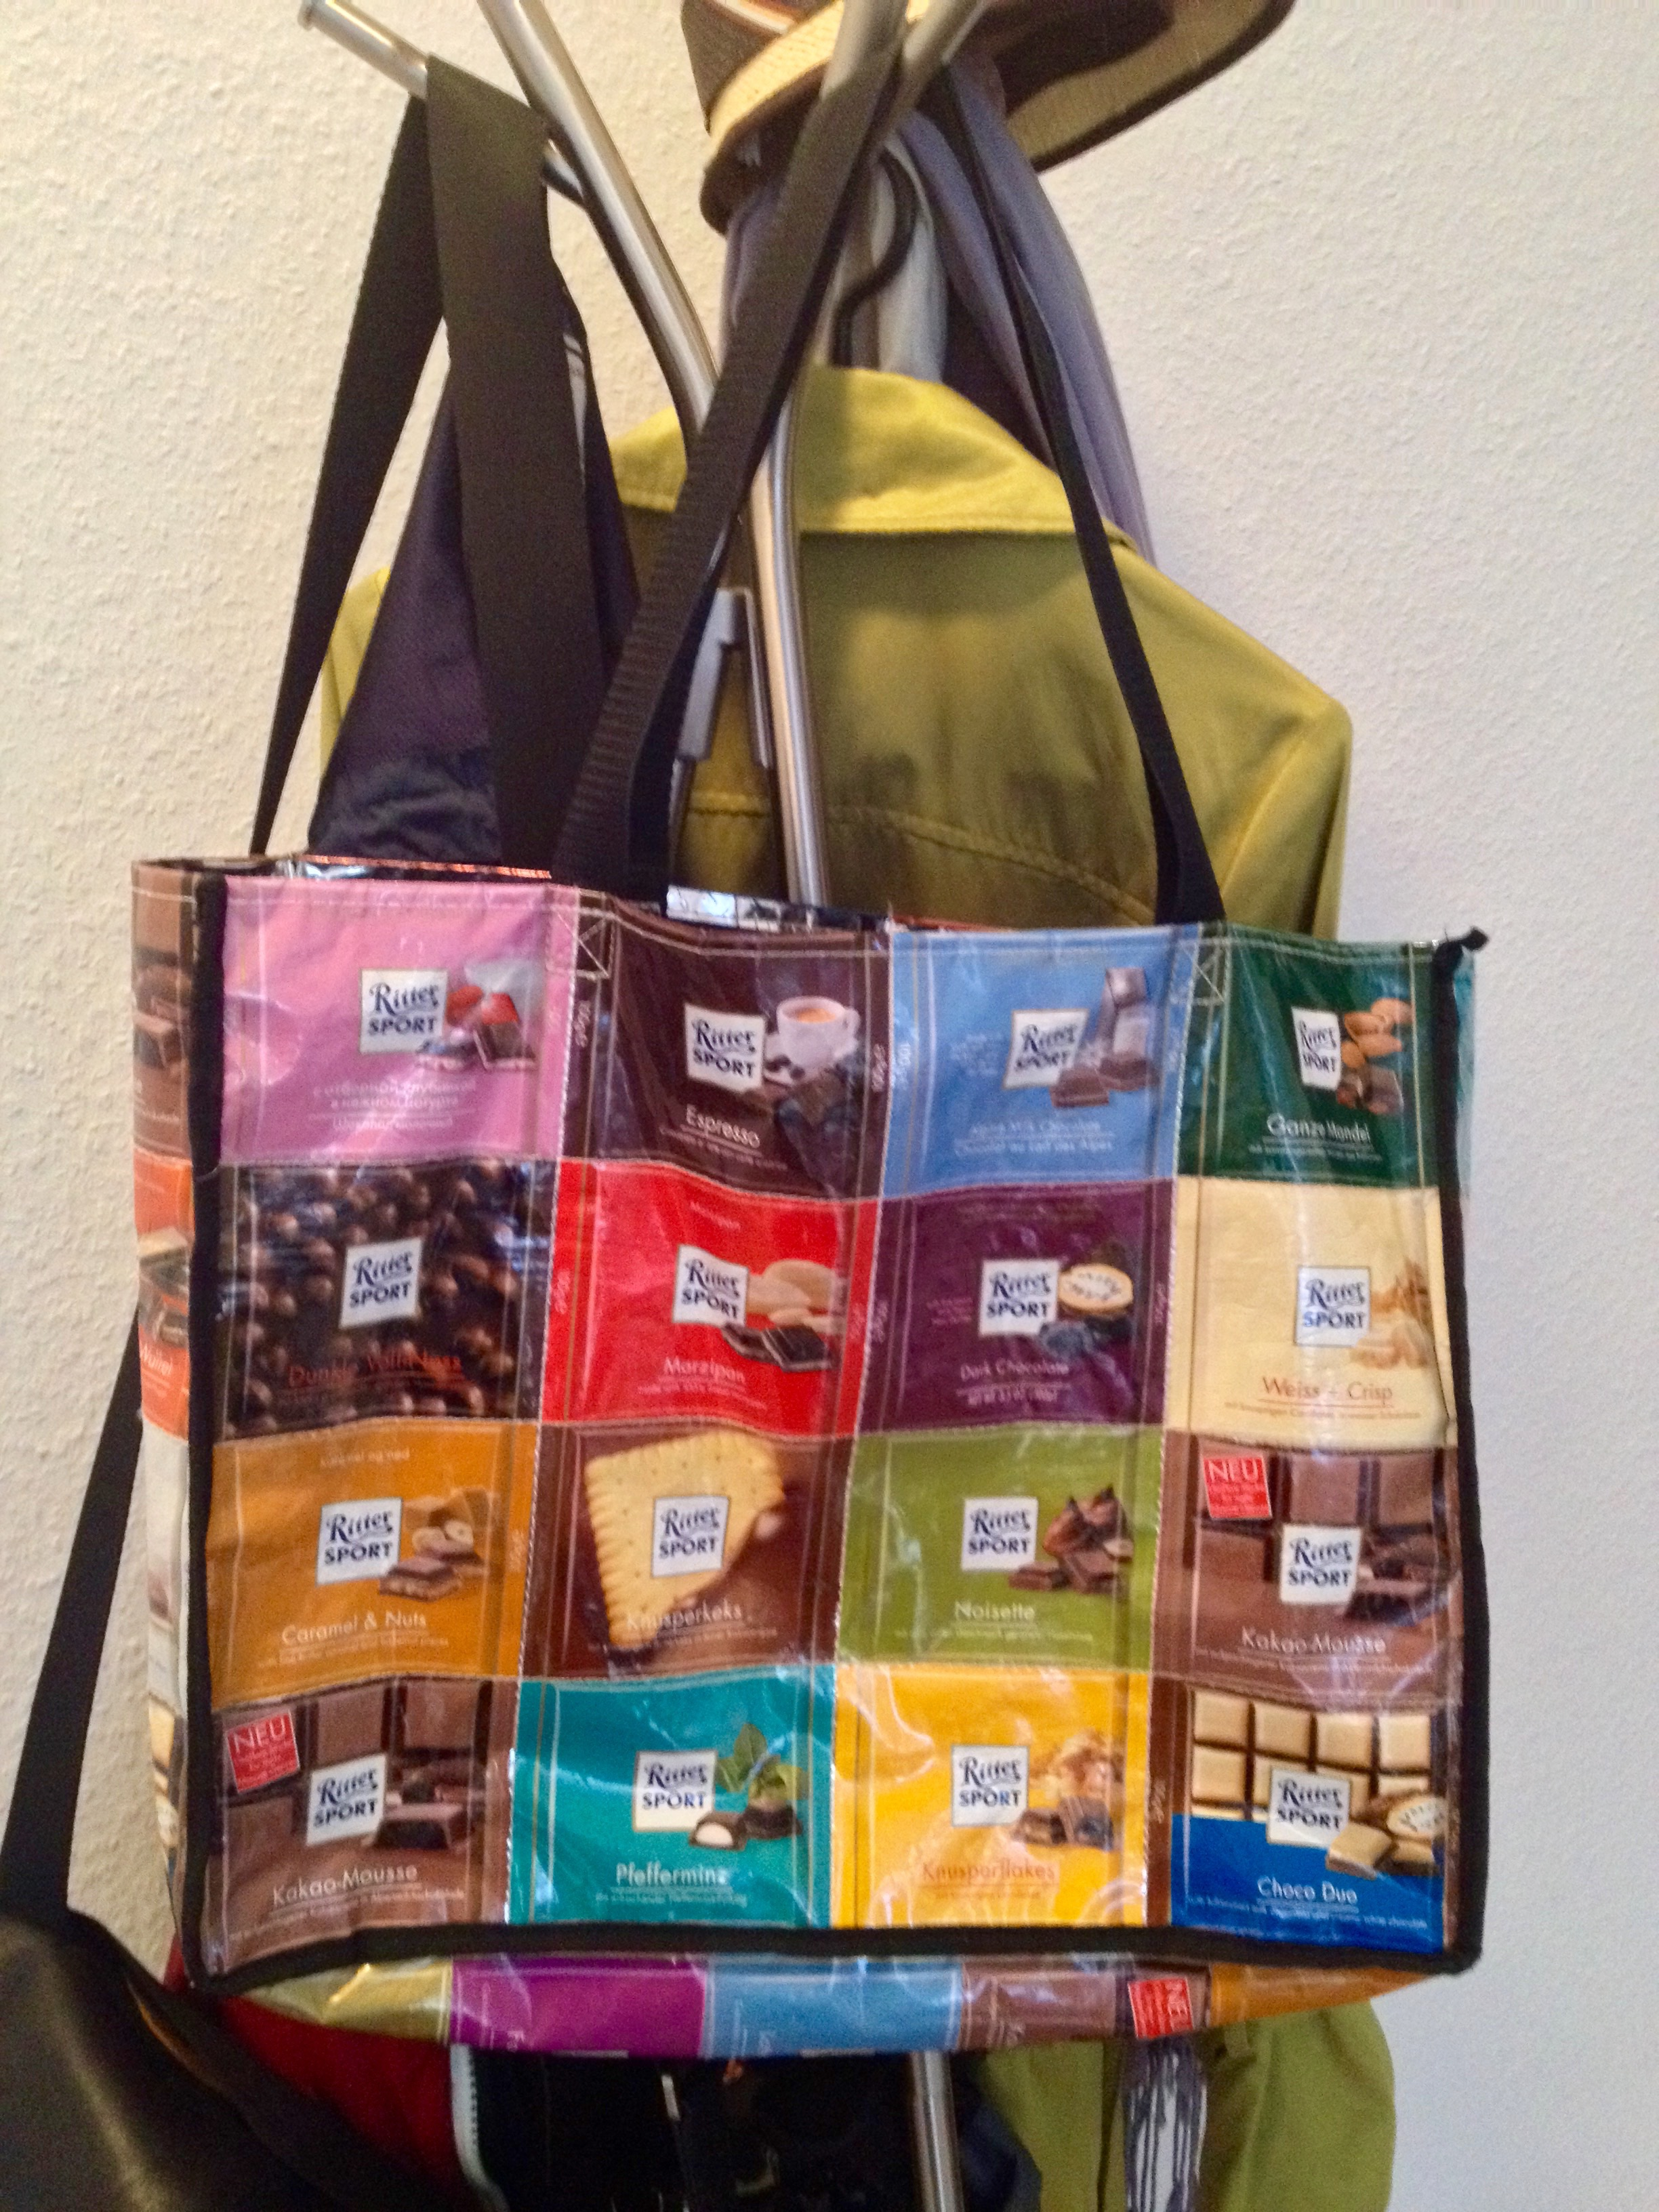 My colorful shopping bag made out ofRitter Sport wrappers